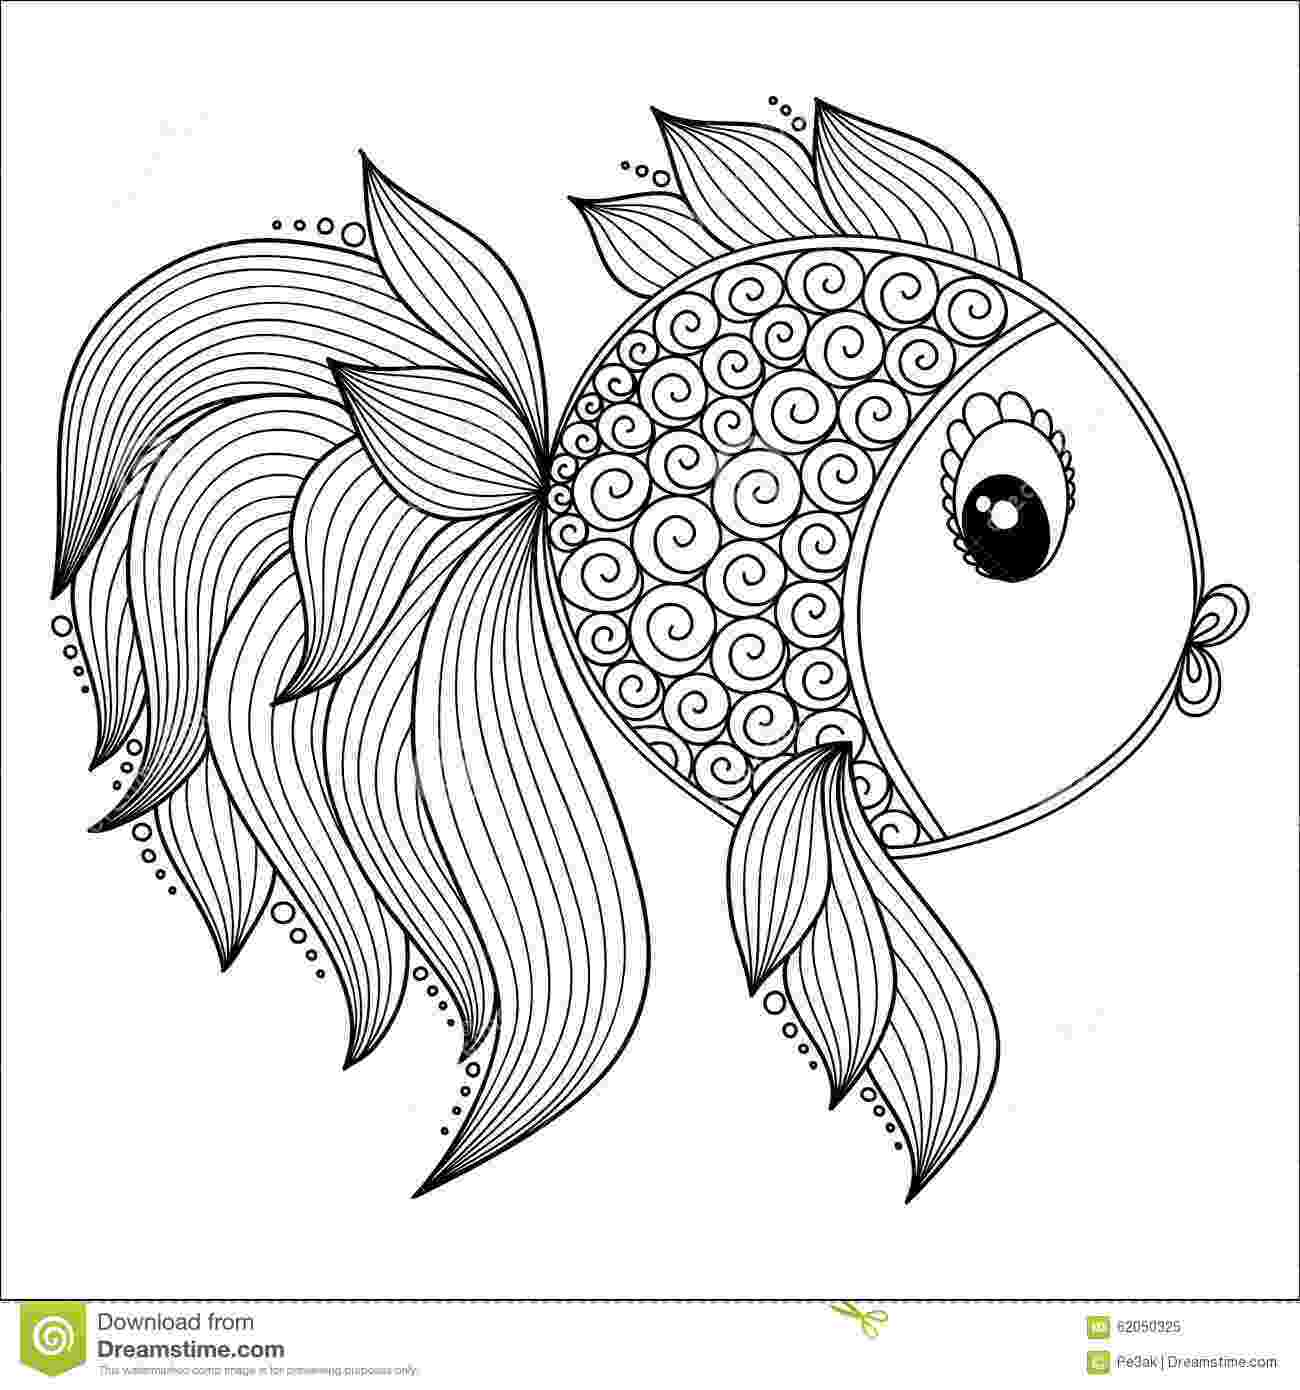 fish coloring pages for adults marine fish coloring pages kleurplaat kleurplaat coloring pages adults fish for